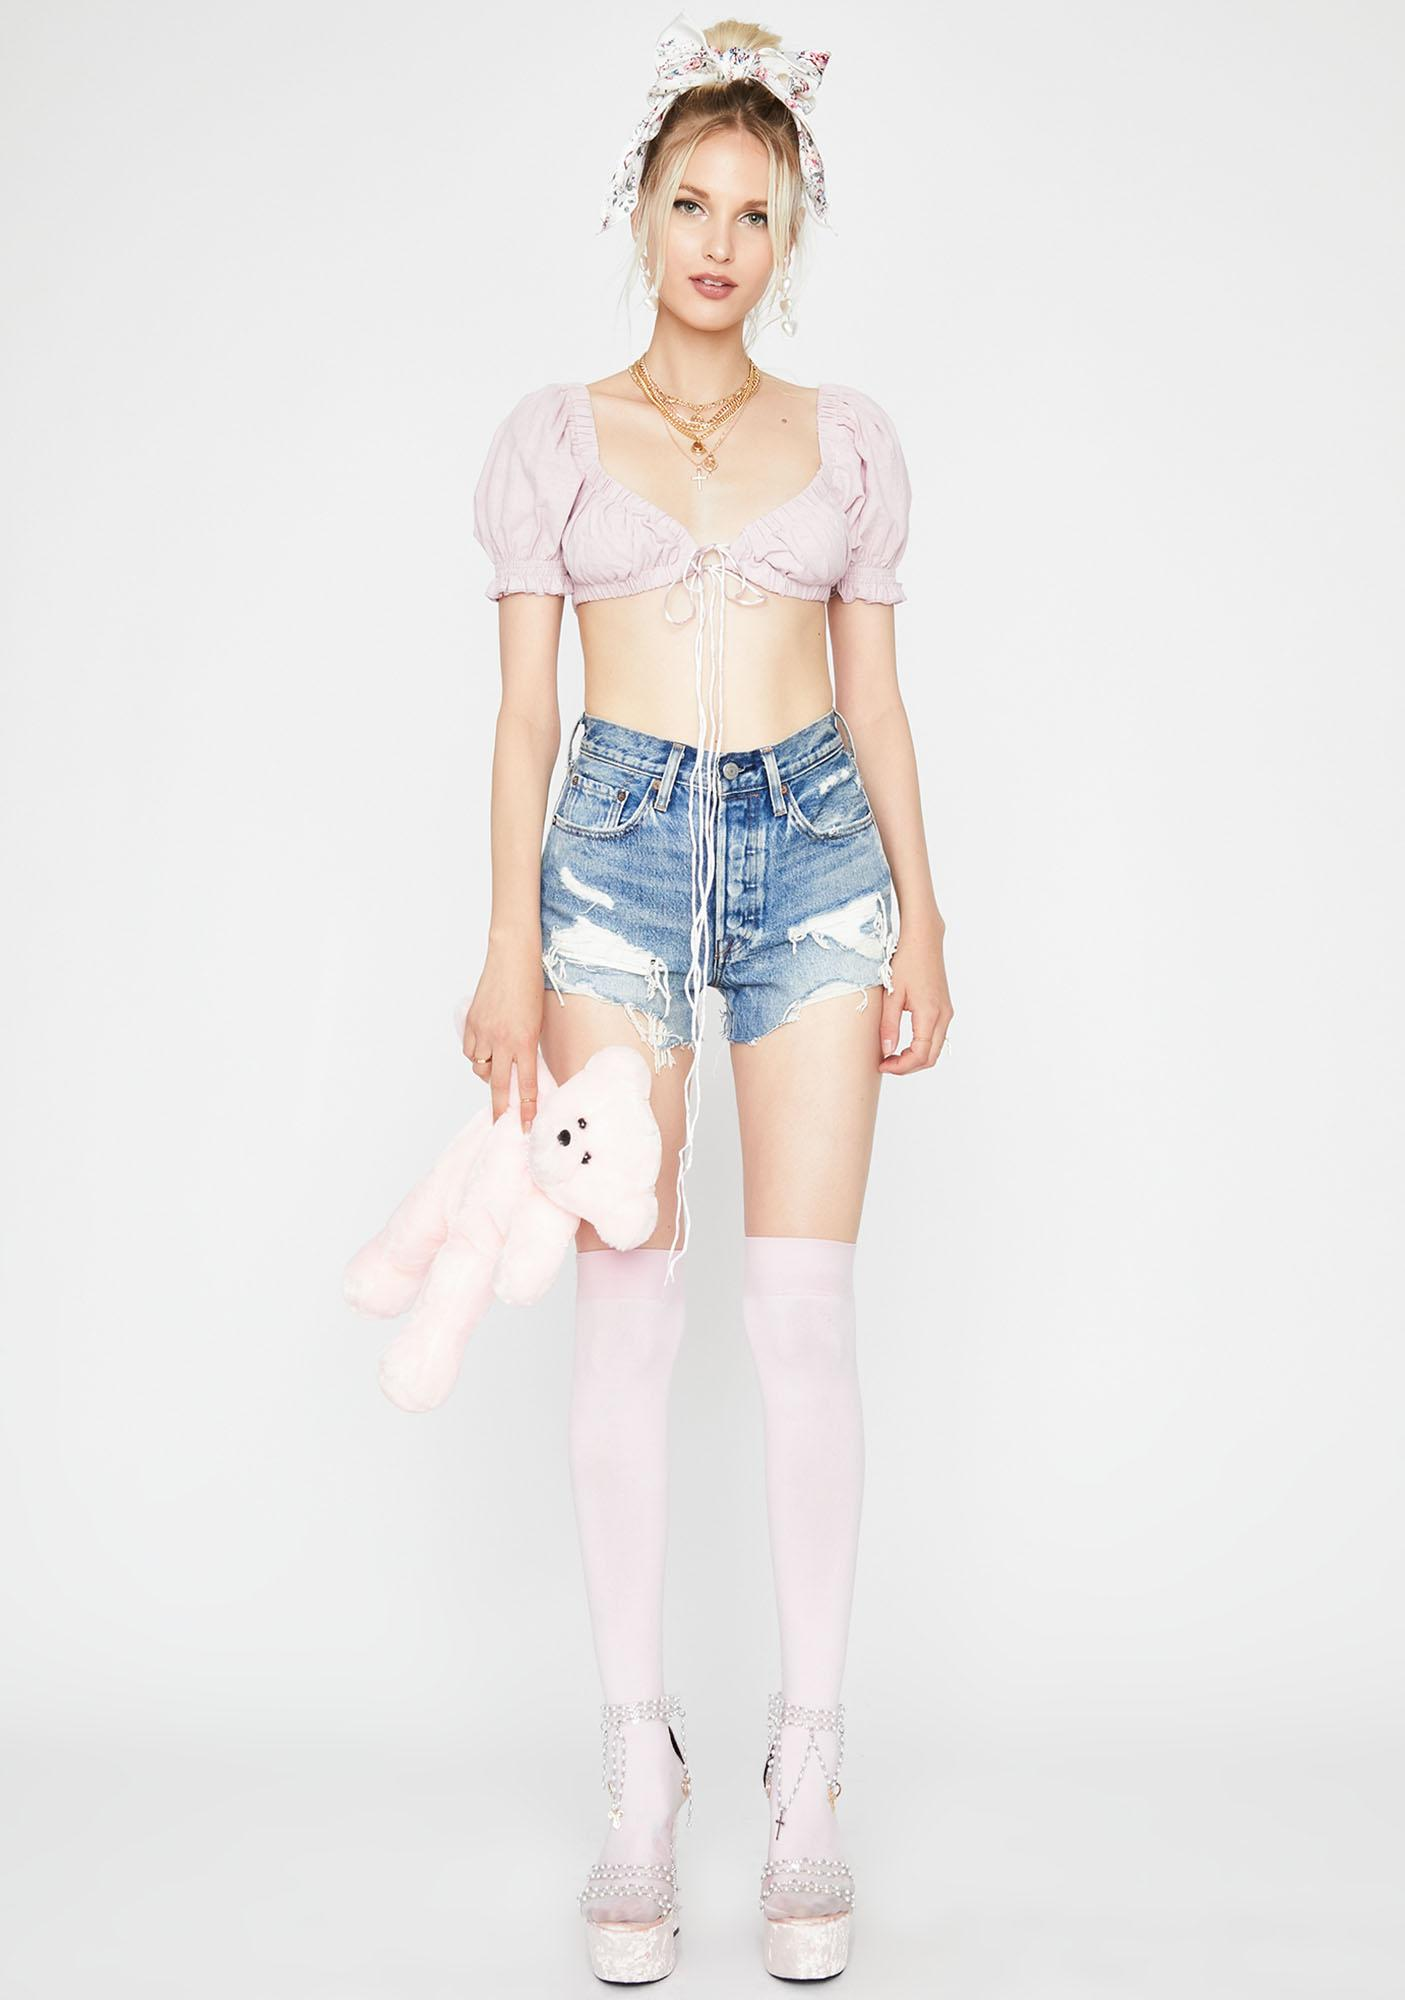 Fairy Iconic Innocence Crop Top